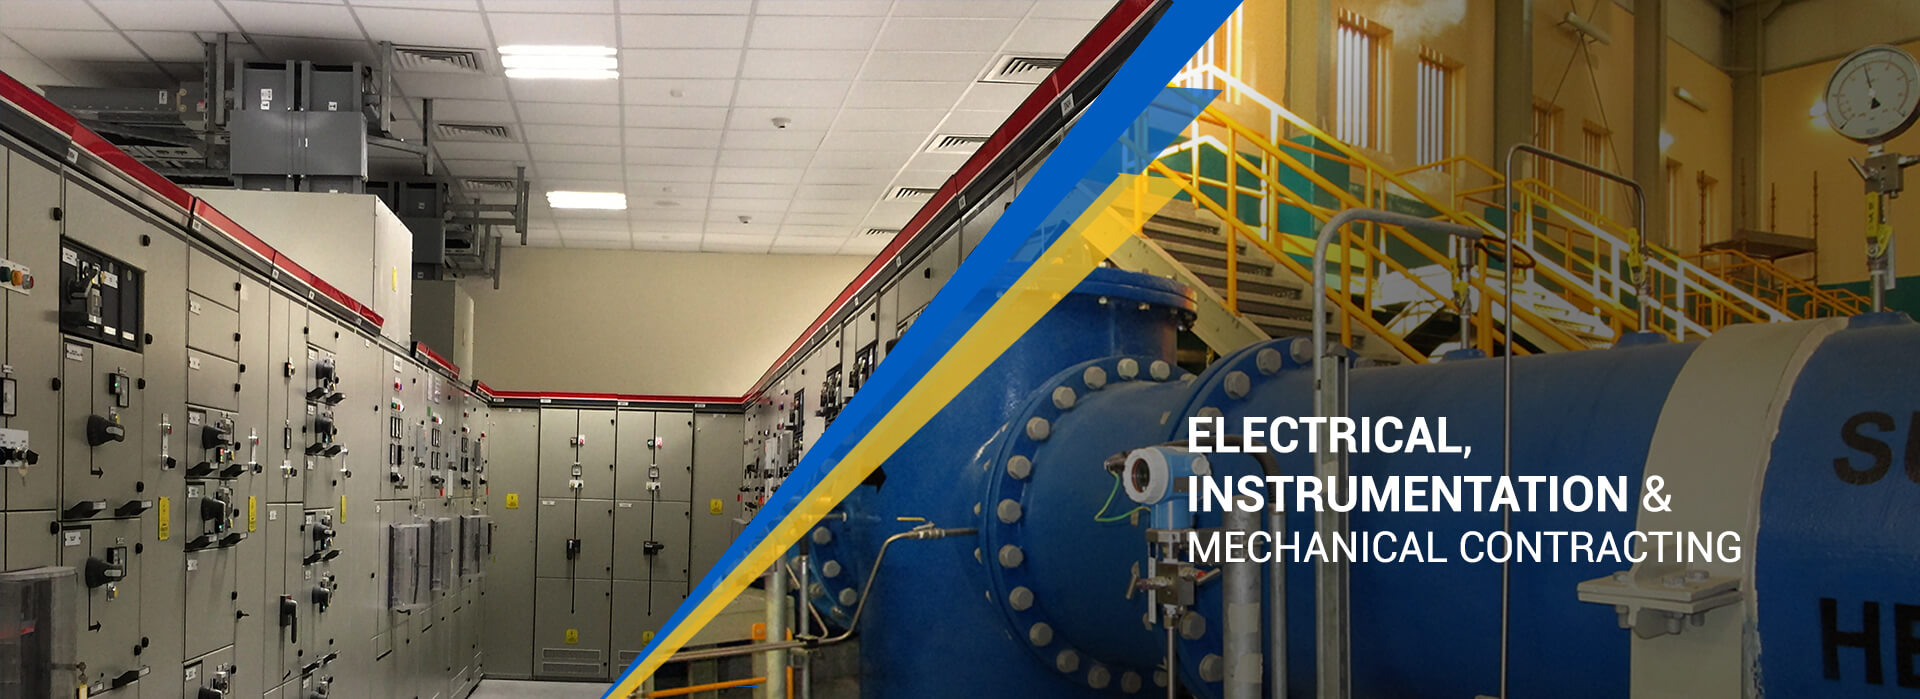 electrical-instrumentation-and-mechanical-contracting